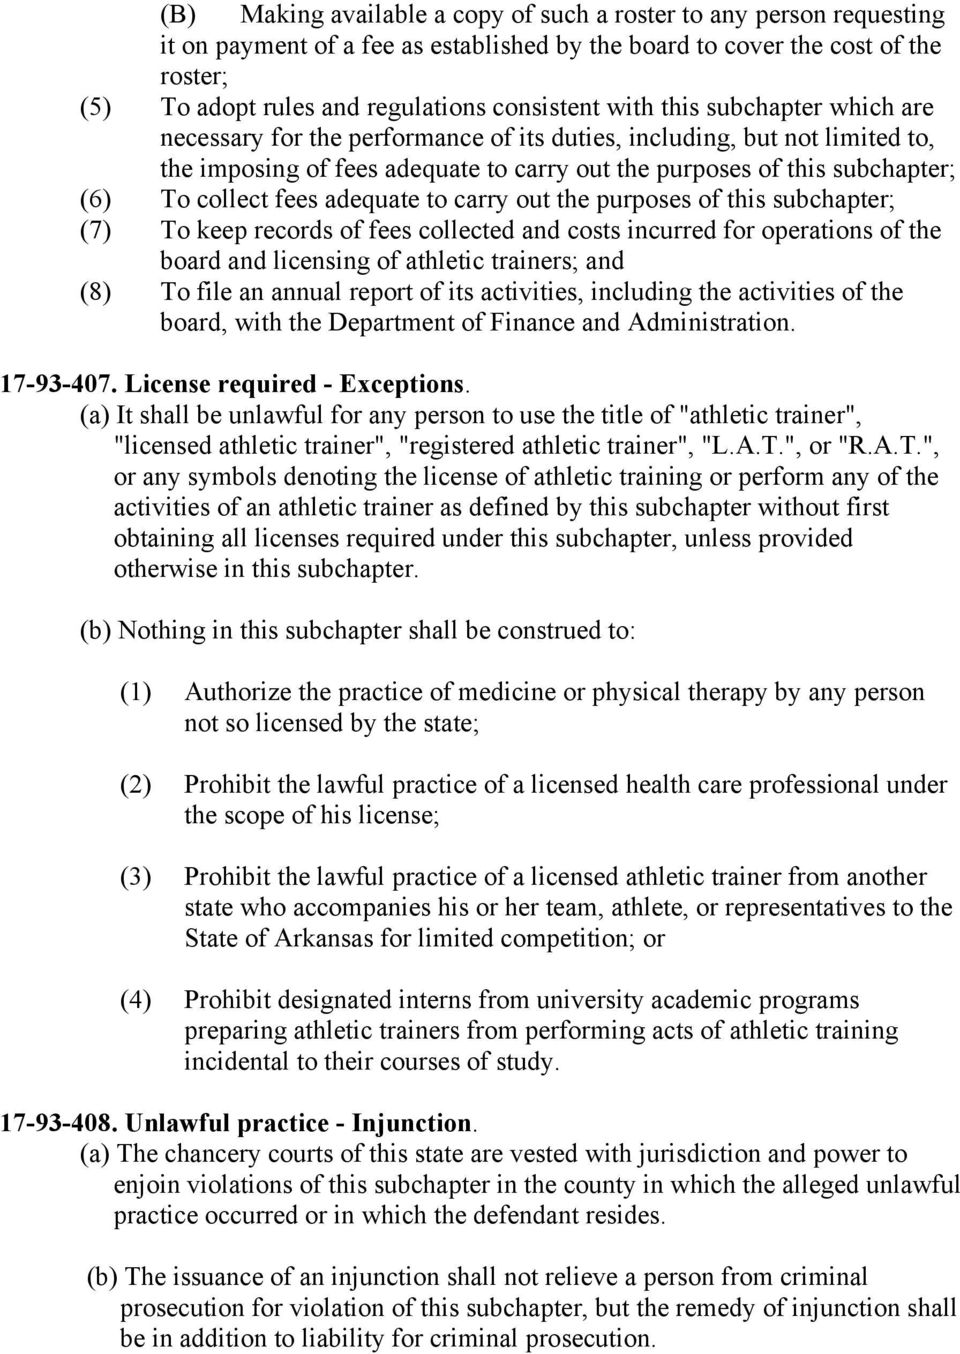 fees adequate to carry out the purposes of this subchapter; (7) To keep records of fees collected and costs incurred for operations of the board and licensing of athletic trainers; and (8) To file an